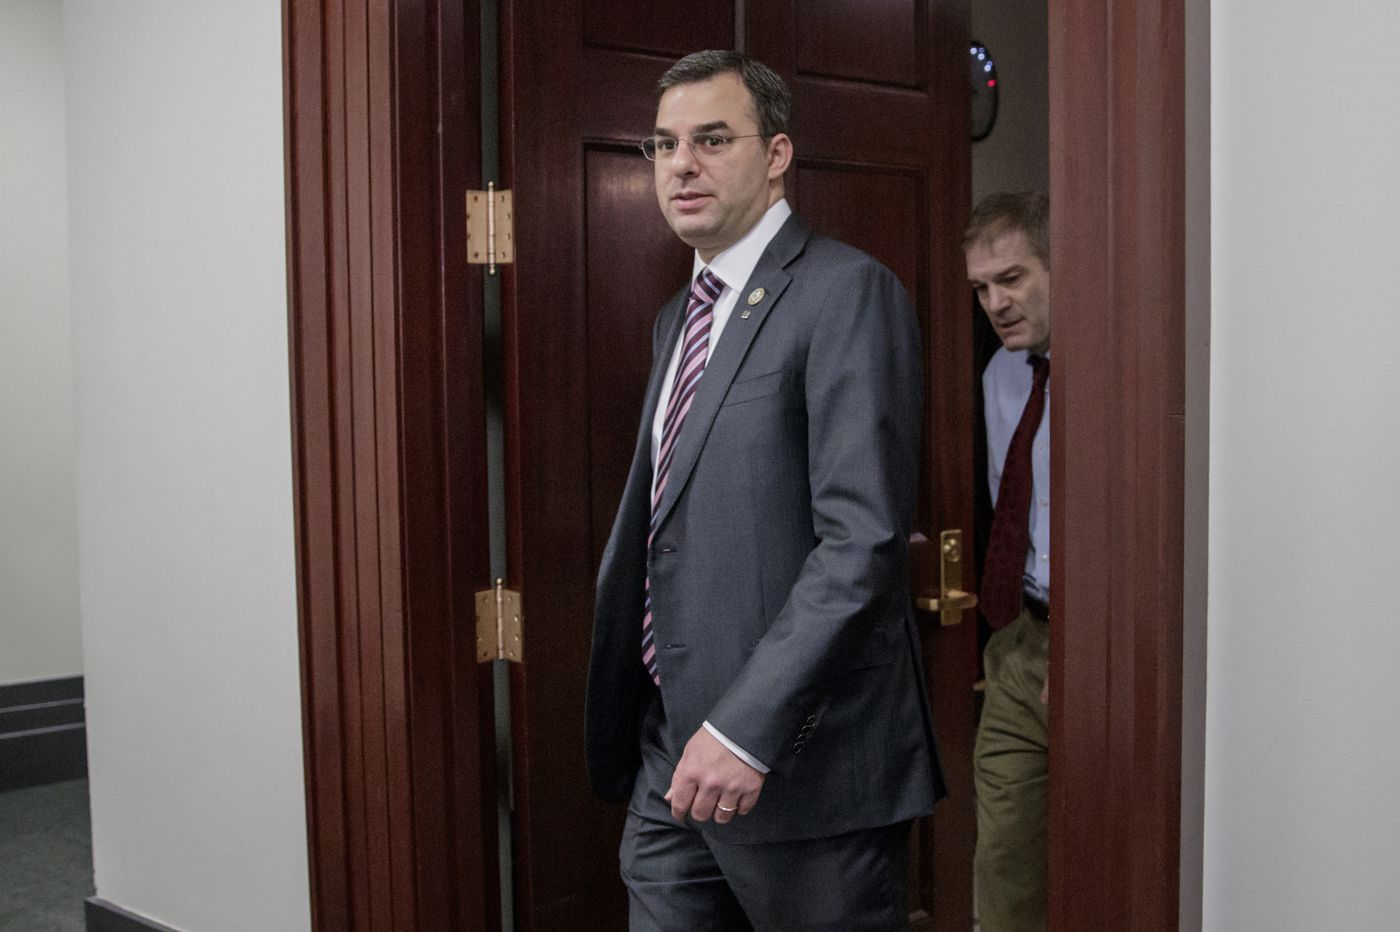 GOP frowns on, but does not punish, Amash's impeachment call